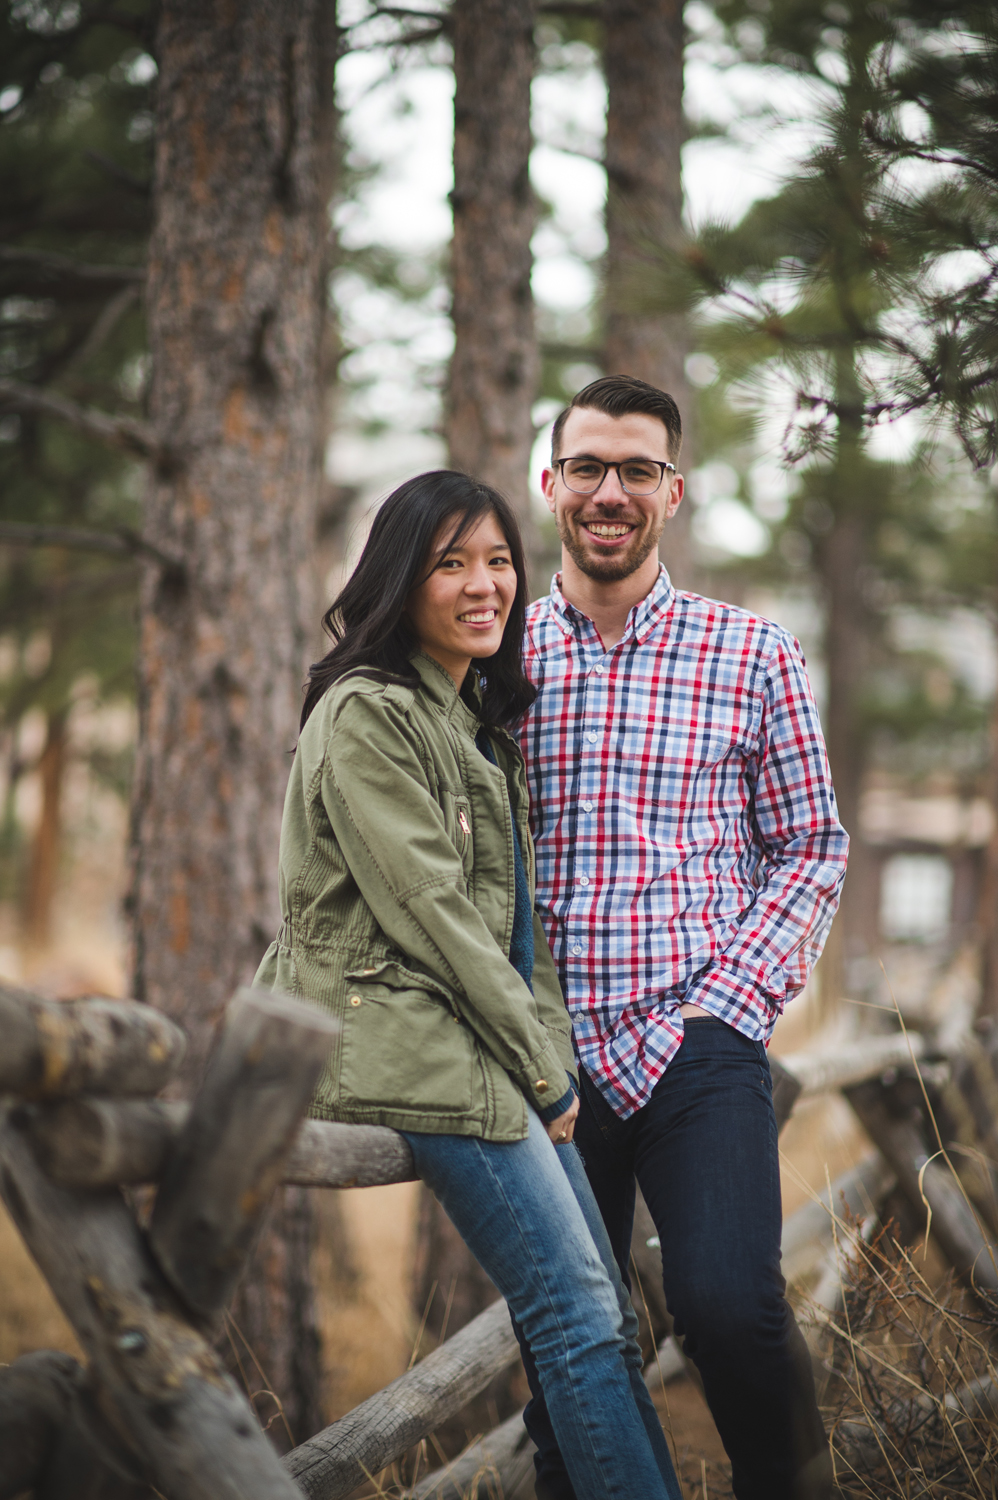 TiffanyandMark_Engaged_0484_squarespace.jpg